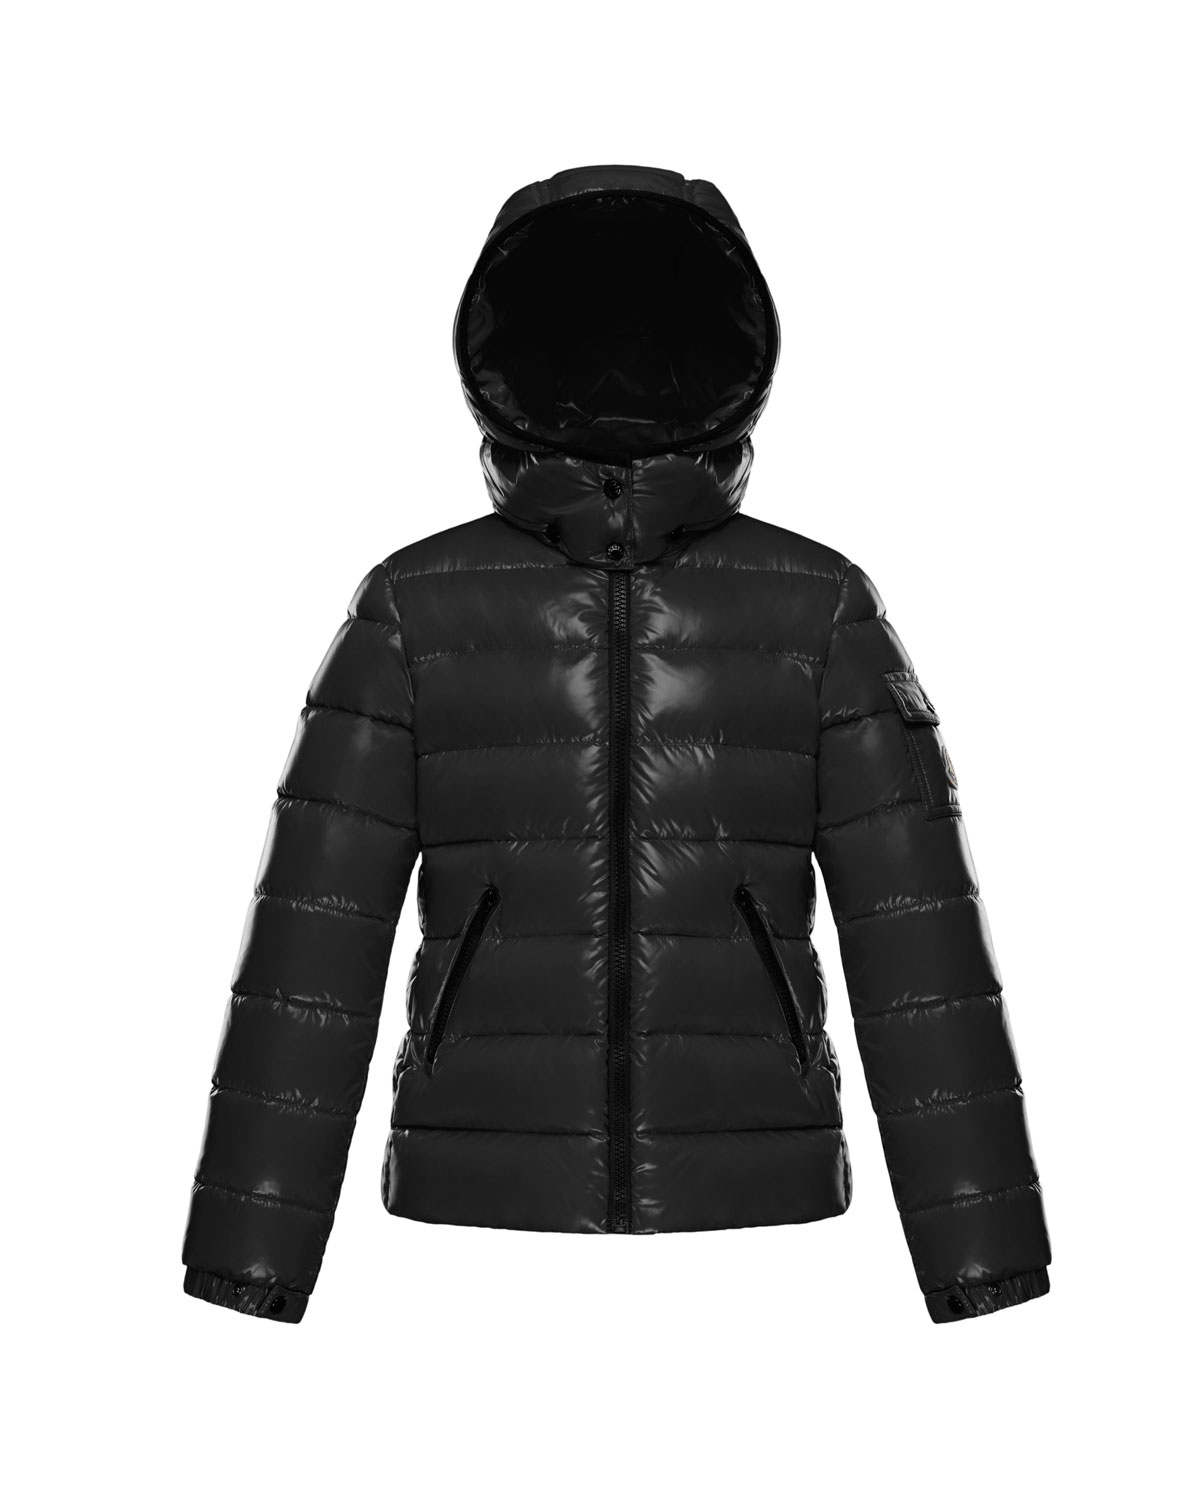 Bady Fitted Puffer Jacket, Black, Size 8-14. Moncler